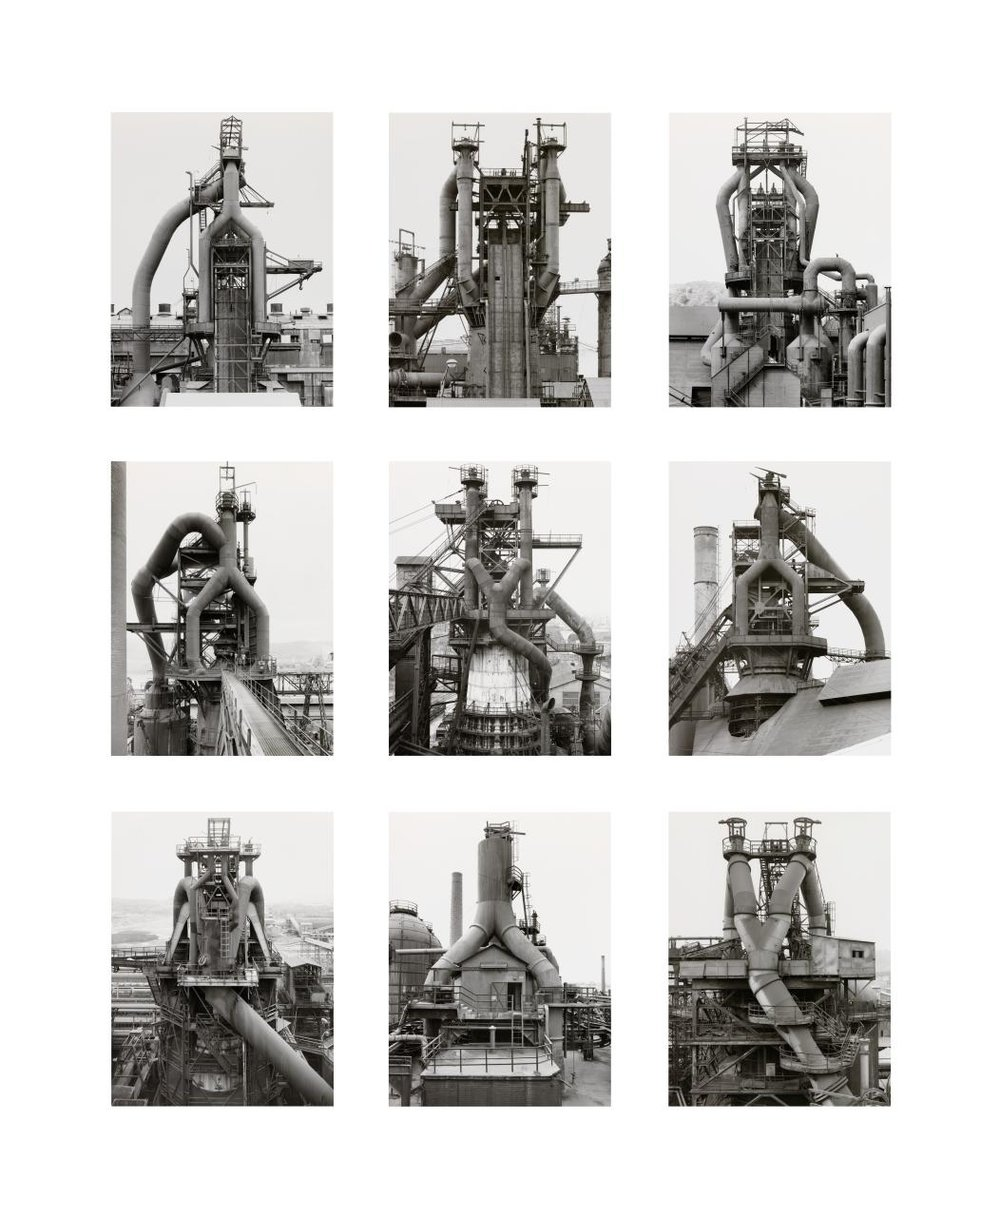 Bernd & Hilla Becher, German: Bernd Becher (1931–2007), Hilla Becher (1934–2015).  Blast Furnace, Frontal Views , 1979–86. Gelatin silver prints (printed before 1987), 60 3/8 × 48 3/8 × 1 inches. The Nelson-Atkins Museum of Art, Kansas City, Missouri. Gift of the Hall Family Foundation, 2016.75.13.1–9.